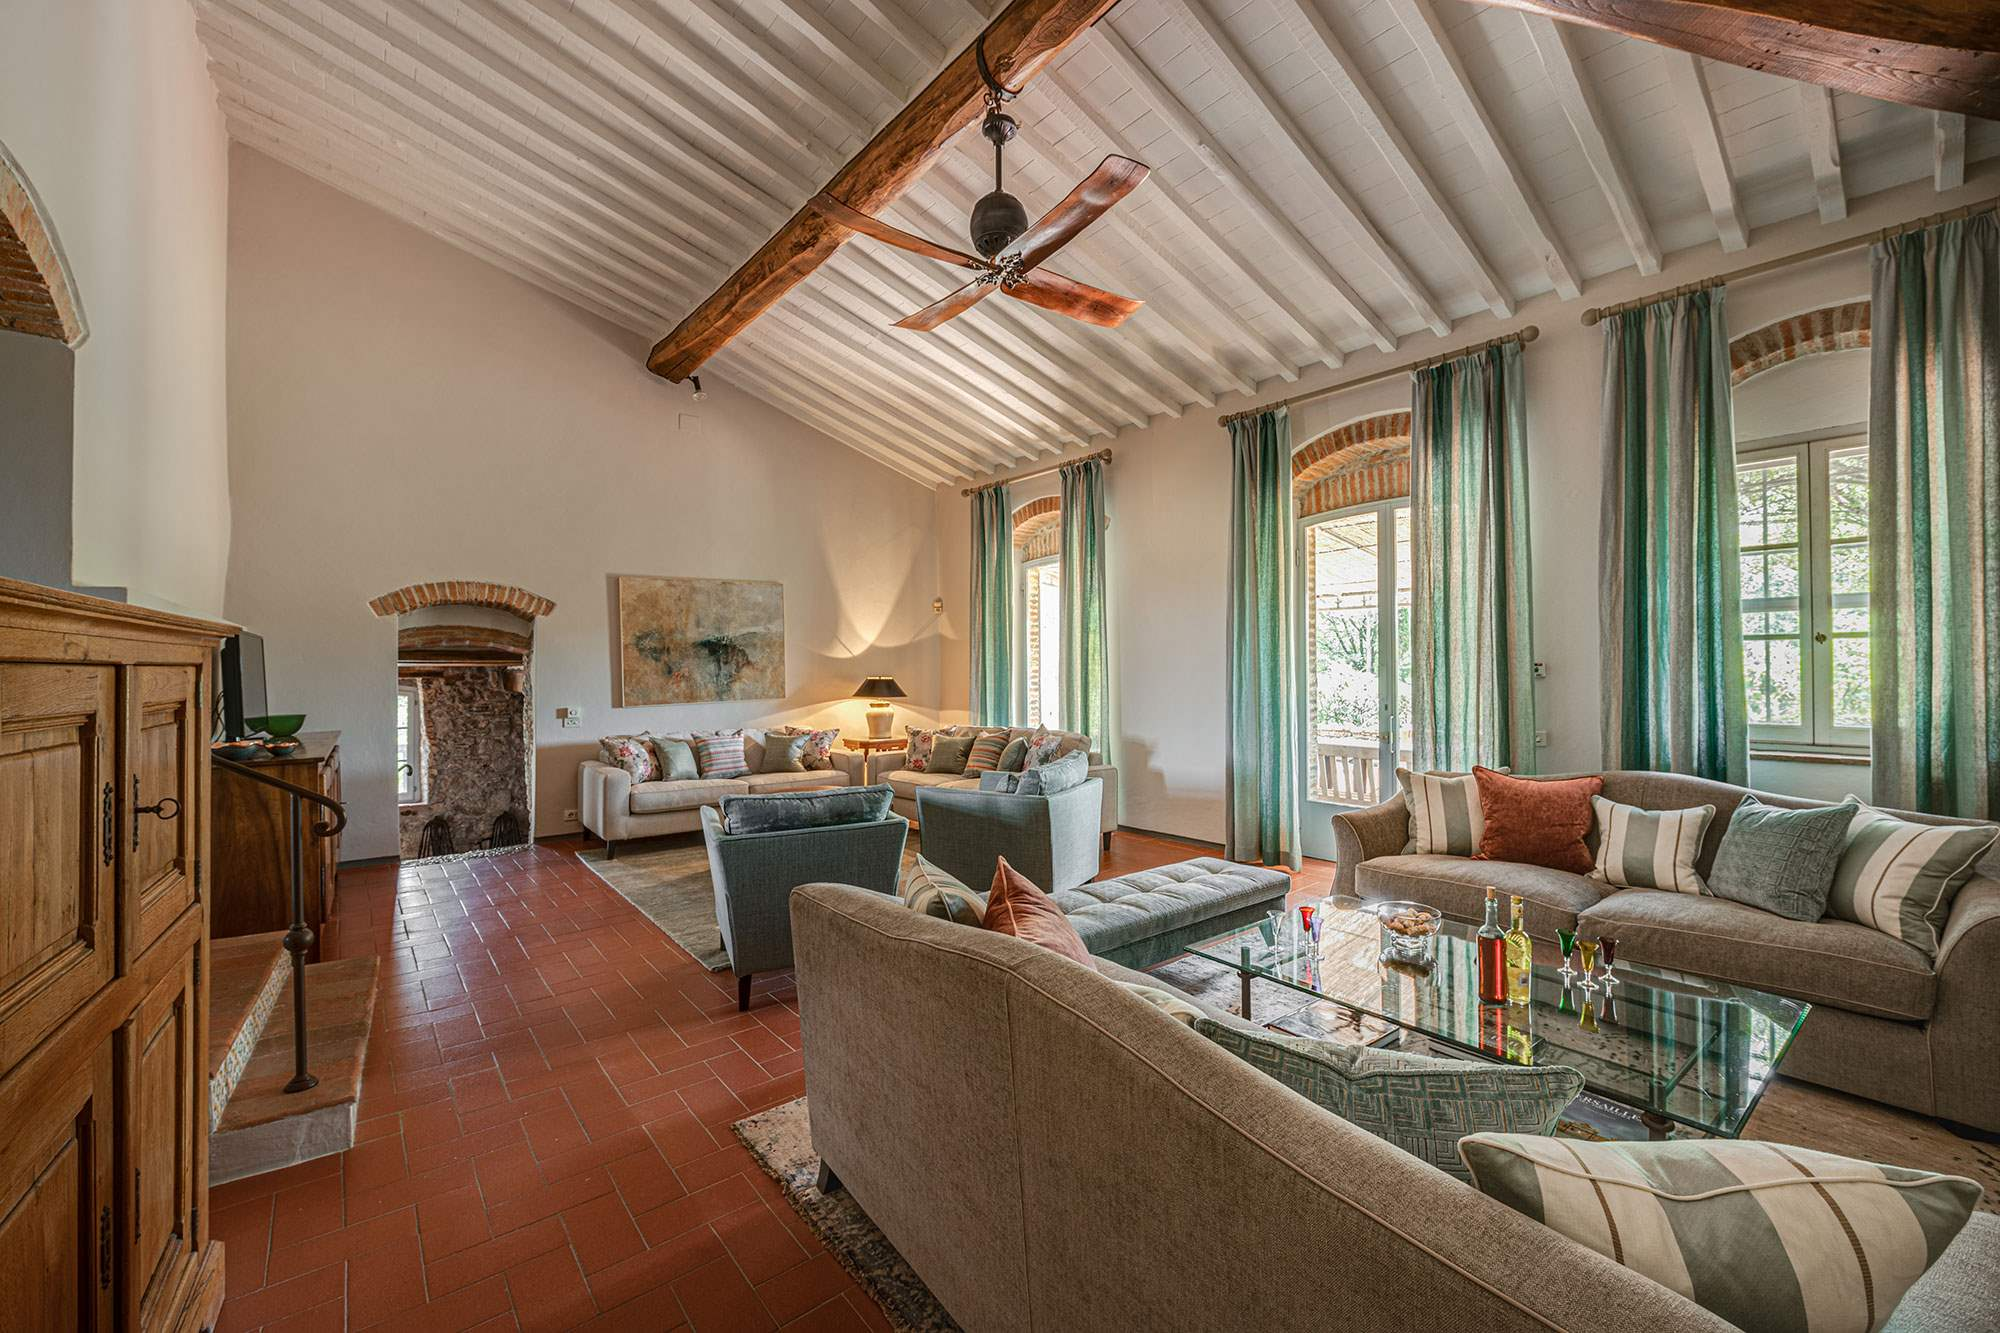 Villa Claudia, 5 Bedroom rate, 5 bedroom villa in Chianti & Countryside, Tuscany Photo #7